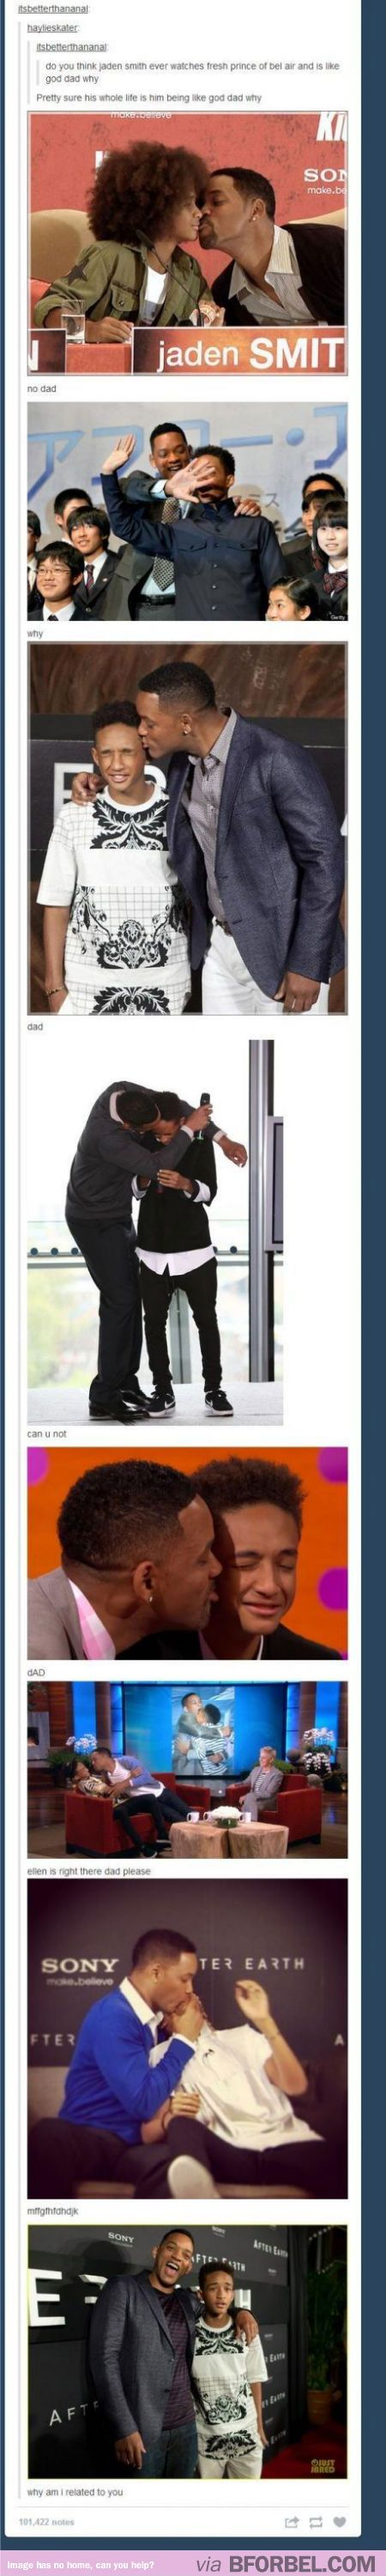 Will Smith is the world's most affectionate Dad. Jaden Smith will NEVER live this down.